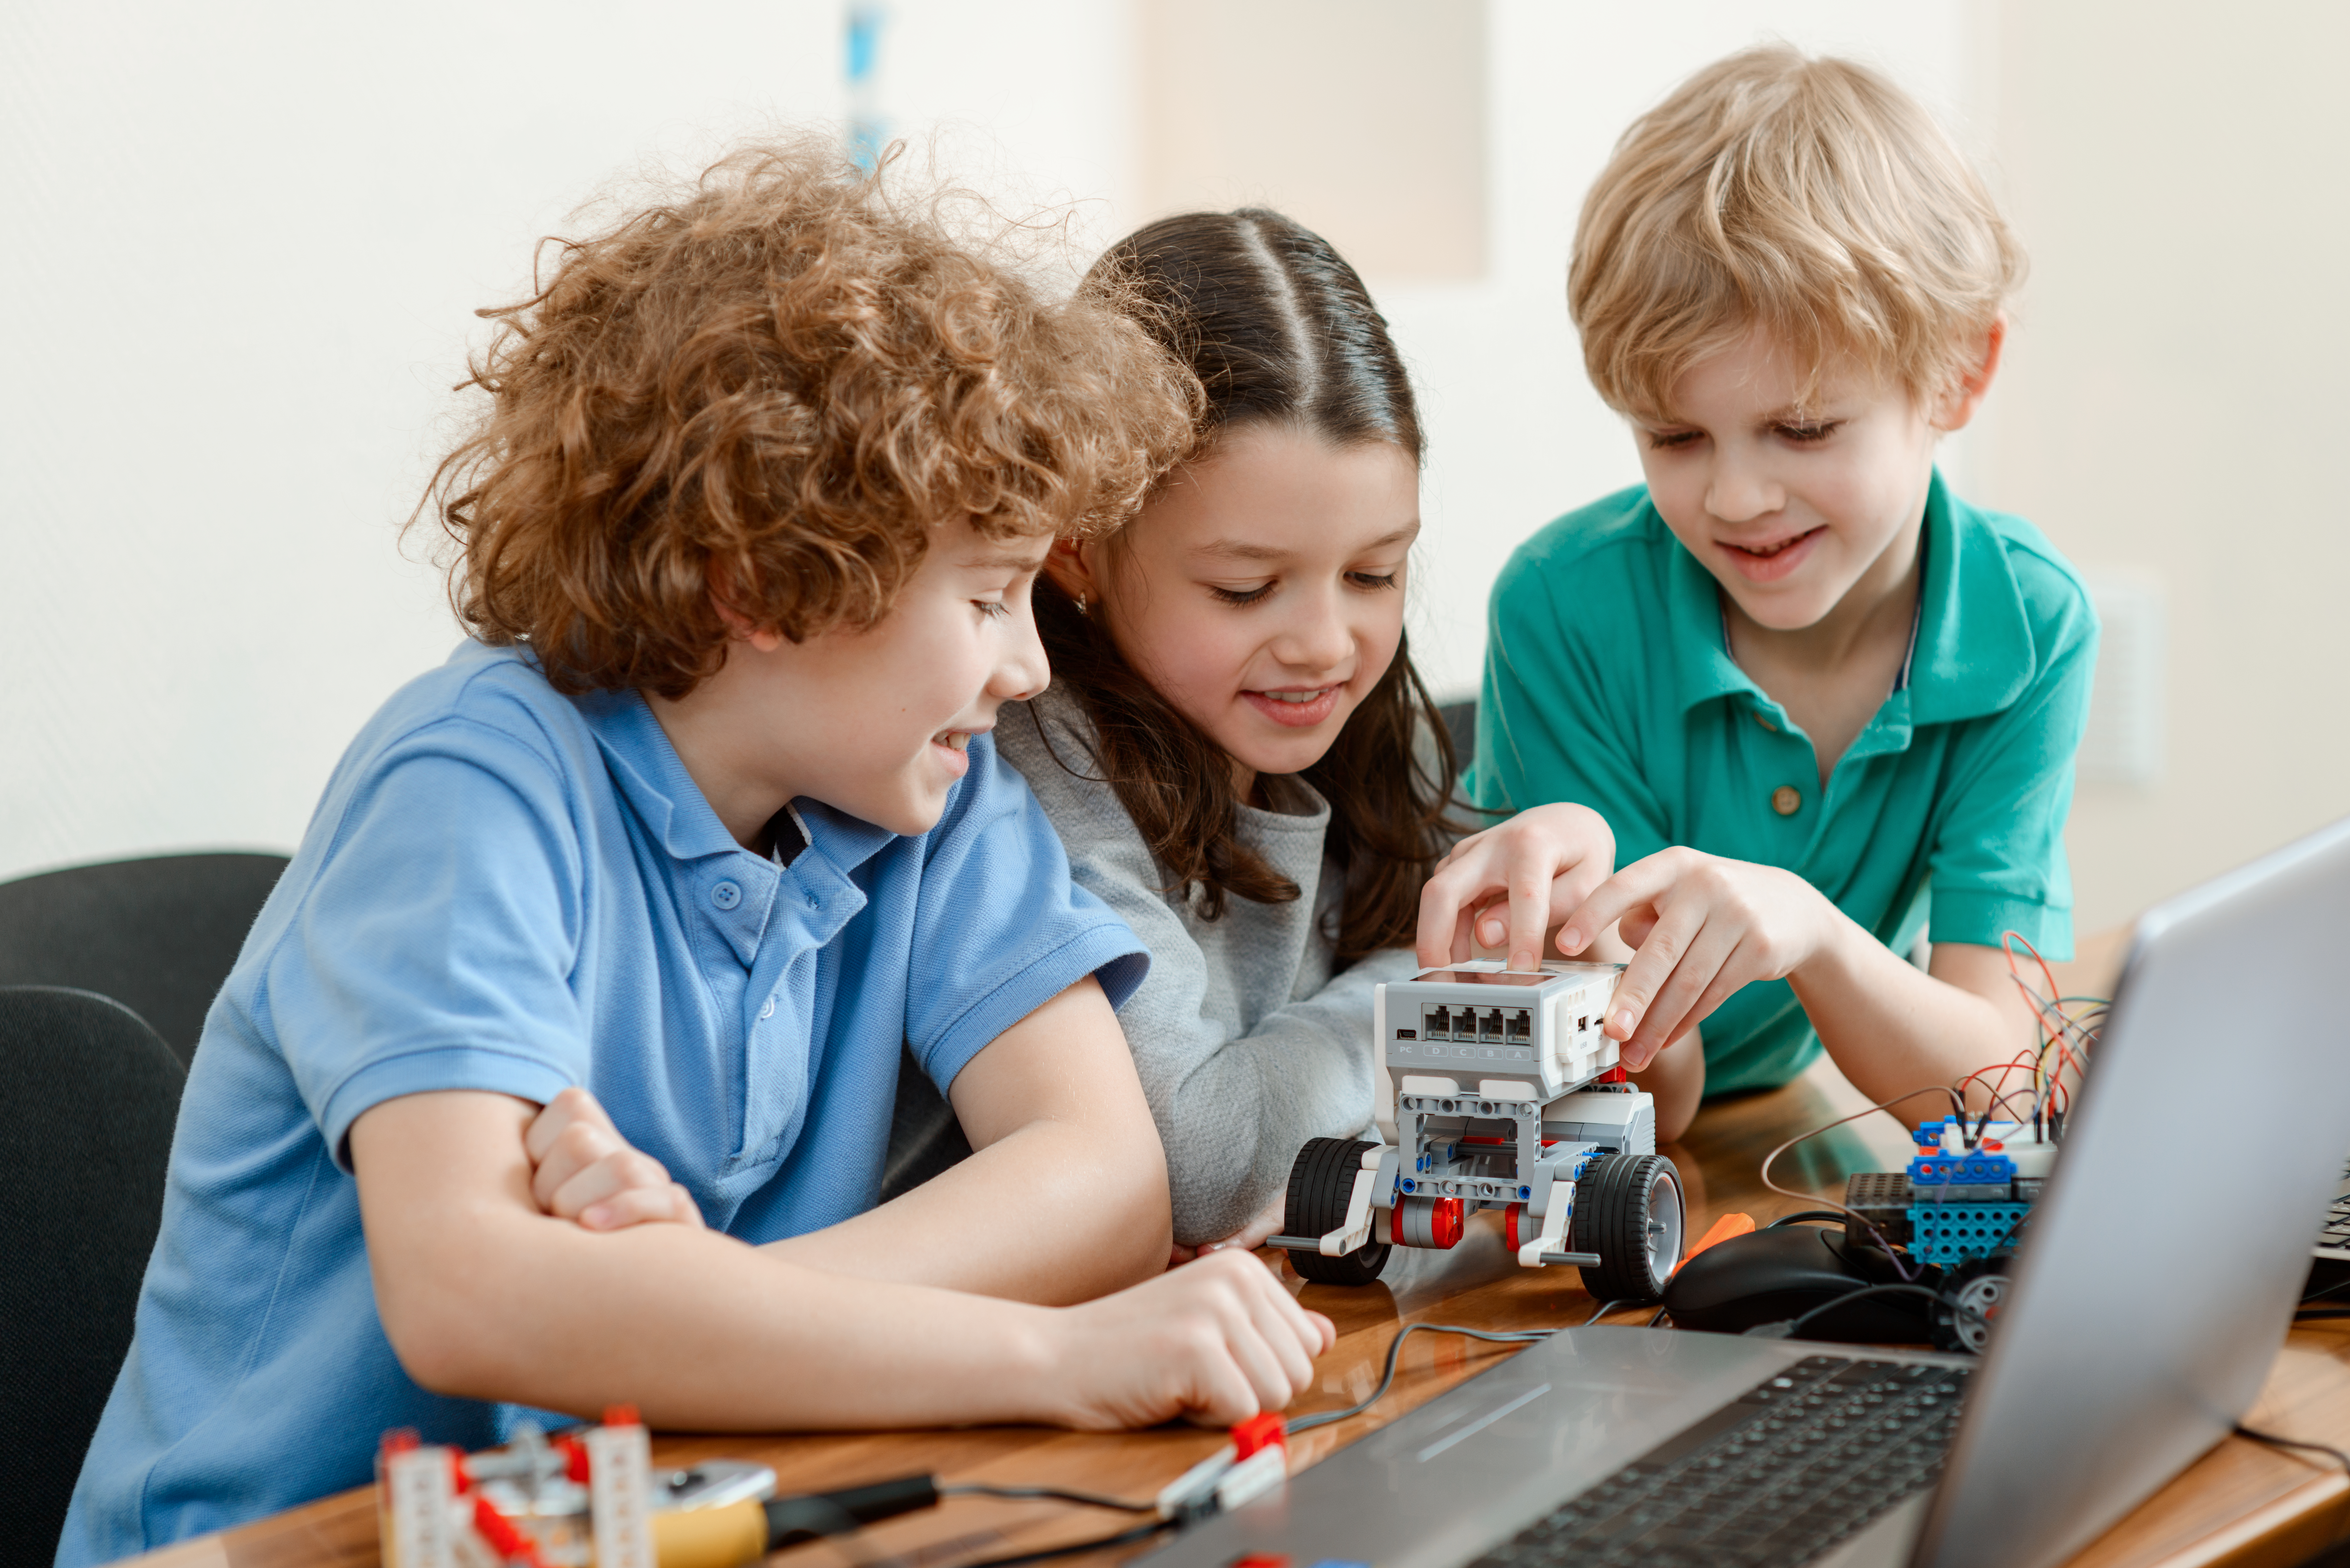 young kids building a robot together